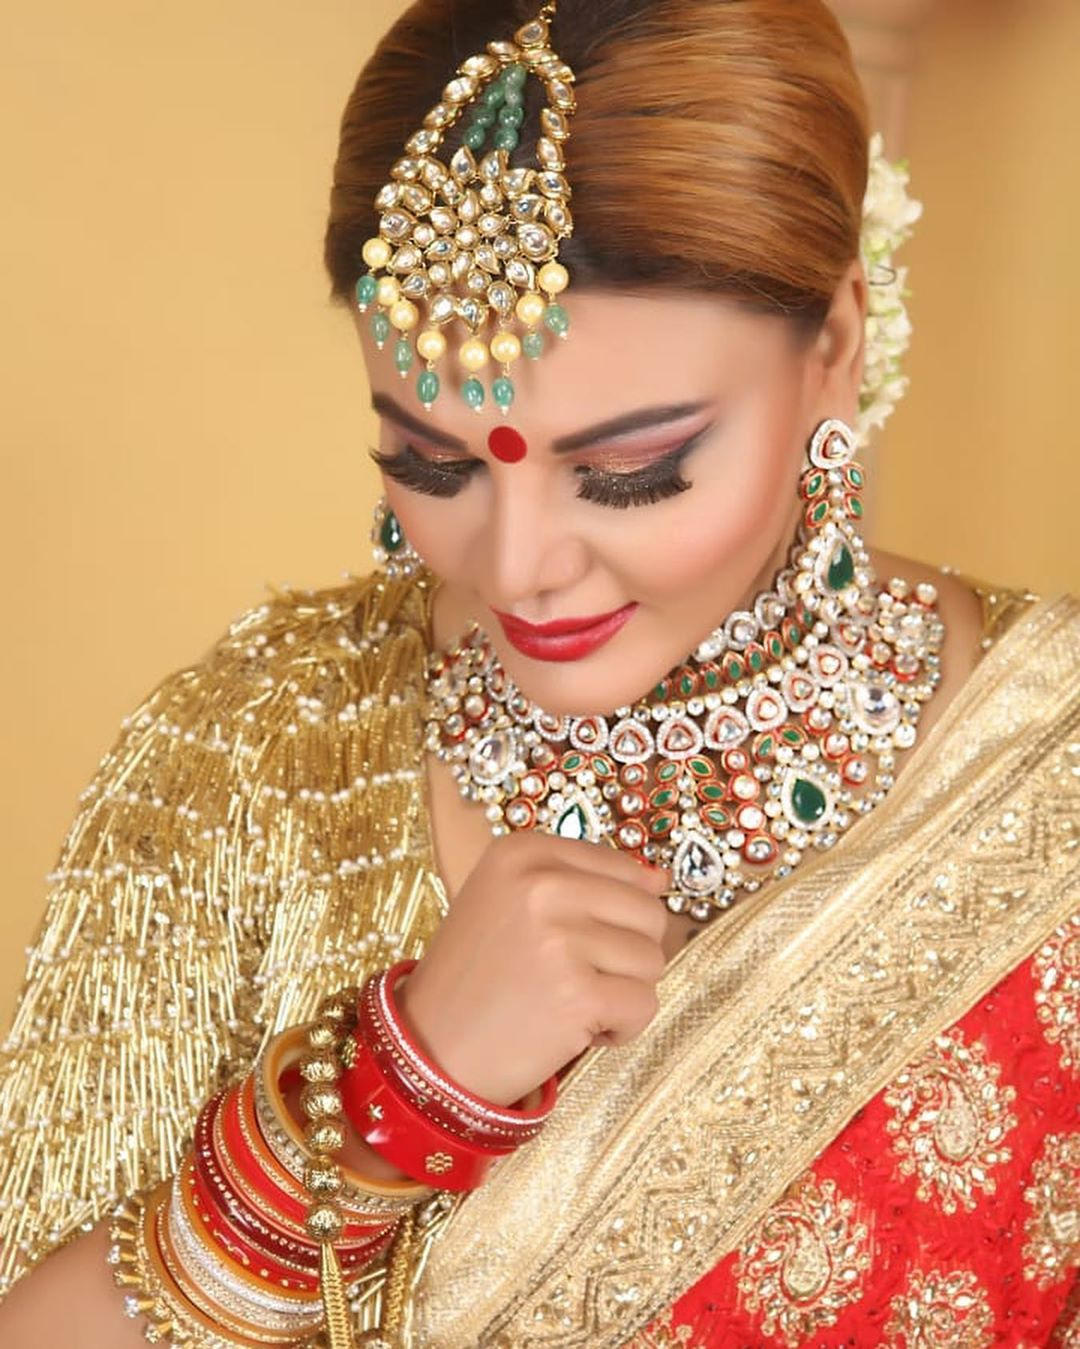 Just Married Pictures Of Rakhi Sawant Are A Dream Come True For Every Mother In Law Bridal Jewelry Celebrity Weddings Just Married